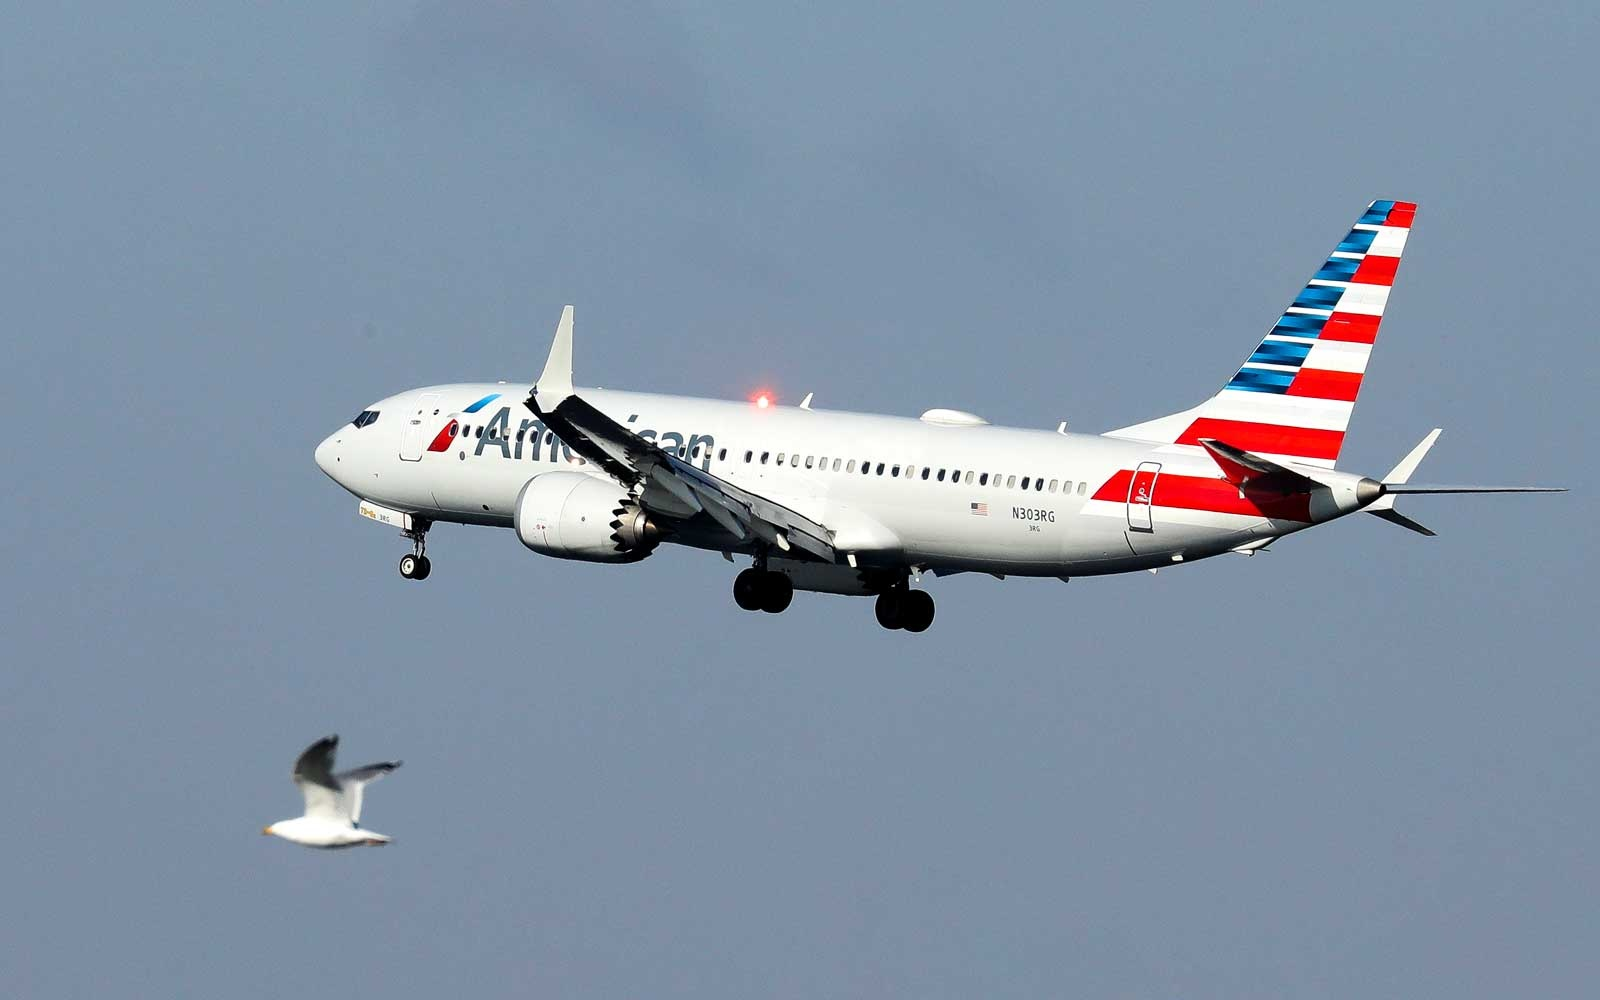 American Airlines Boeing 737 Max 8